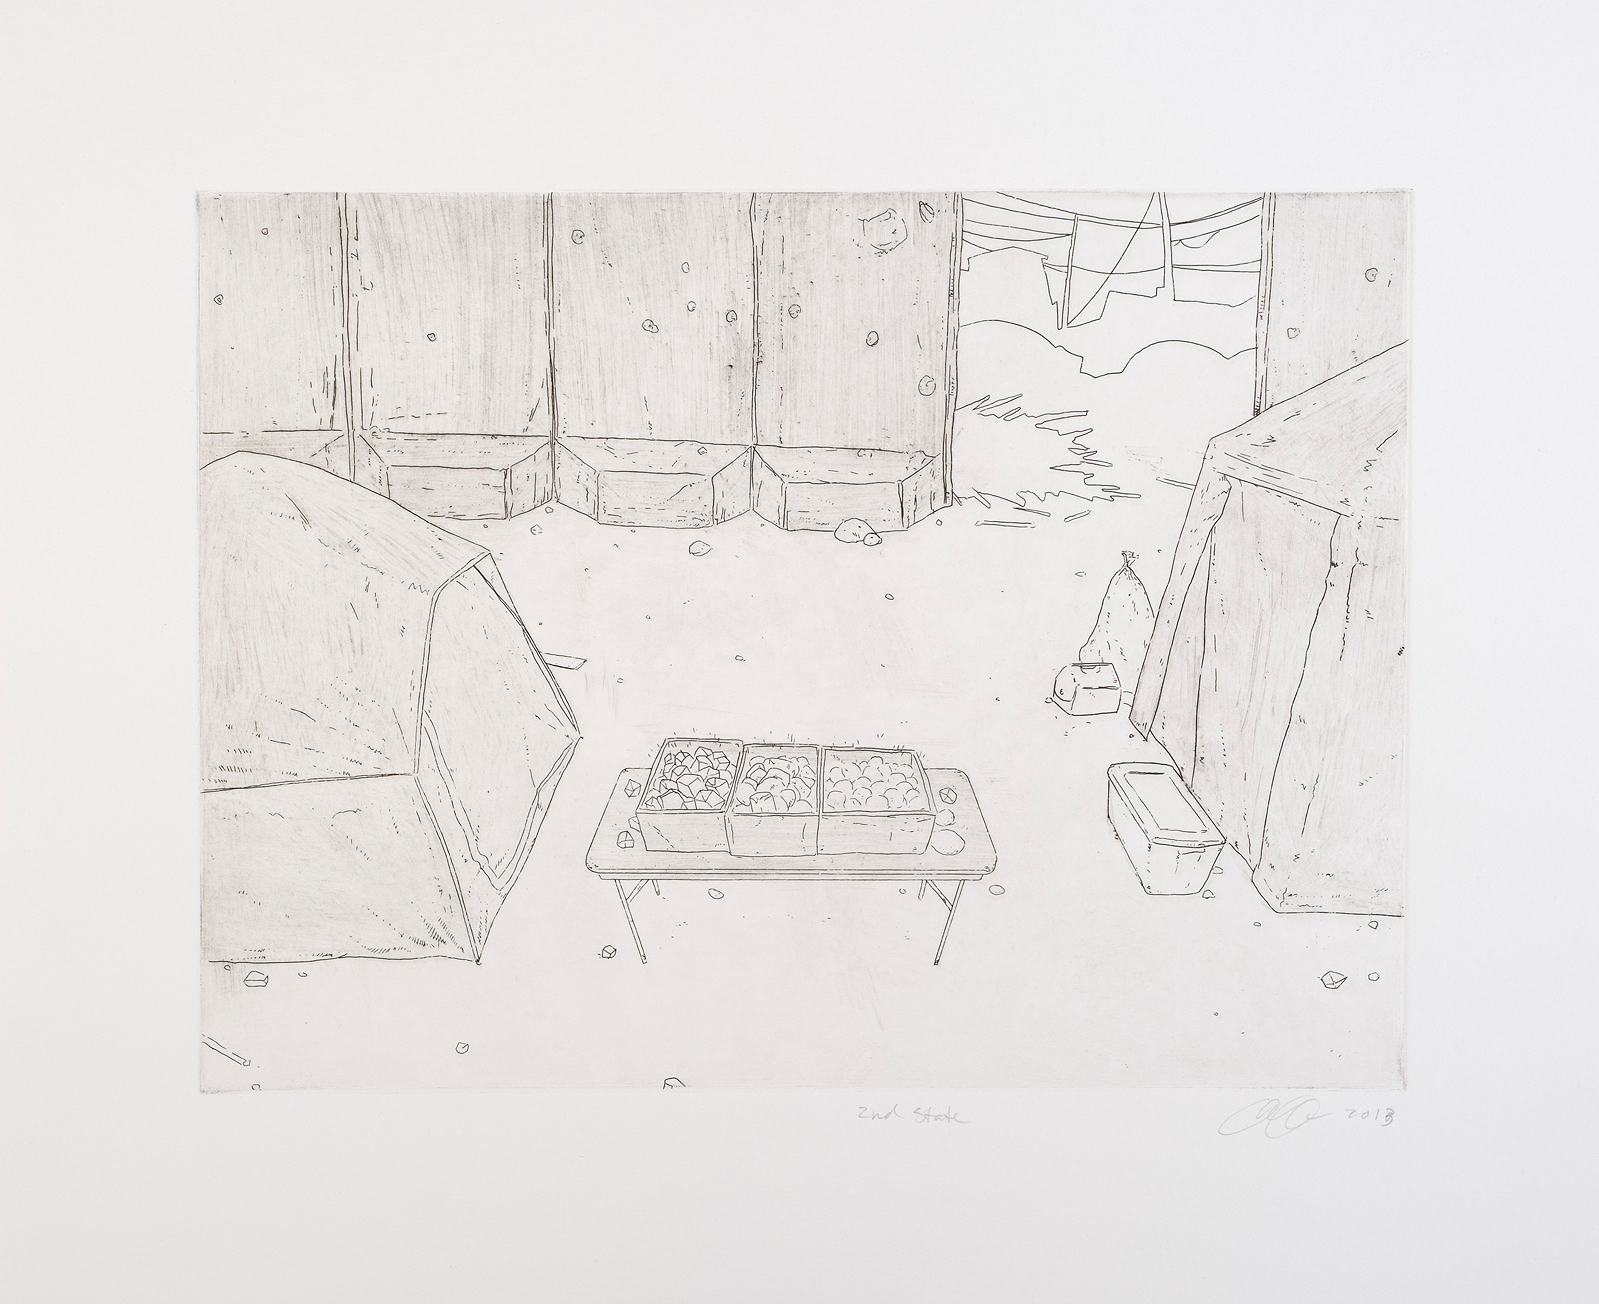 """Nutritional Crisis  Intaglio 9x12"""", 2nd state, ed 4, 2013 Printed at Fresno State University"""